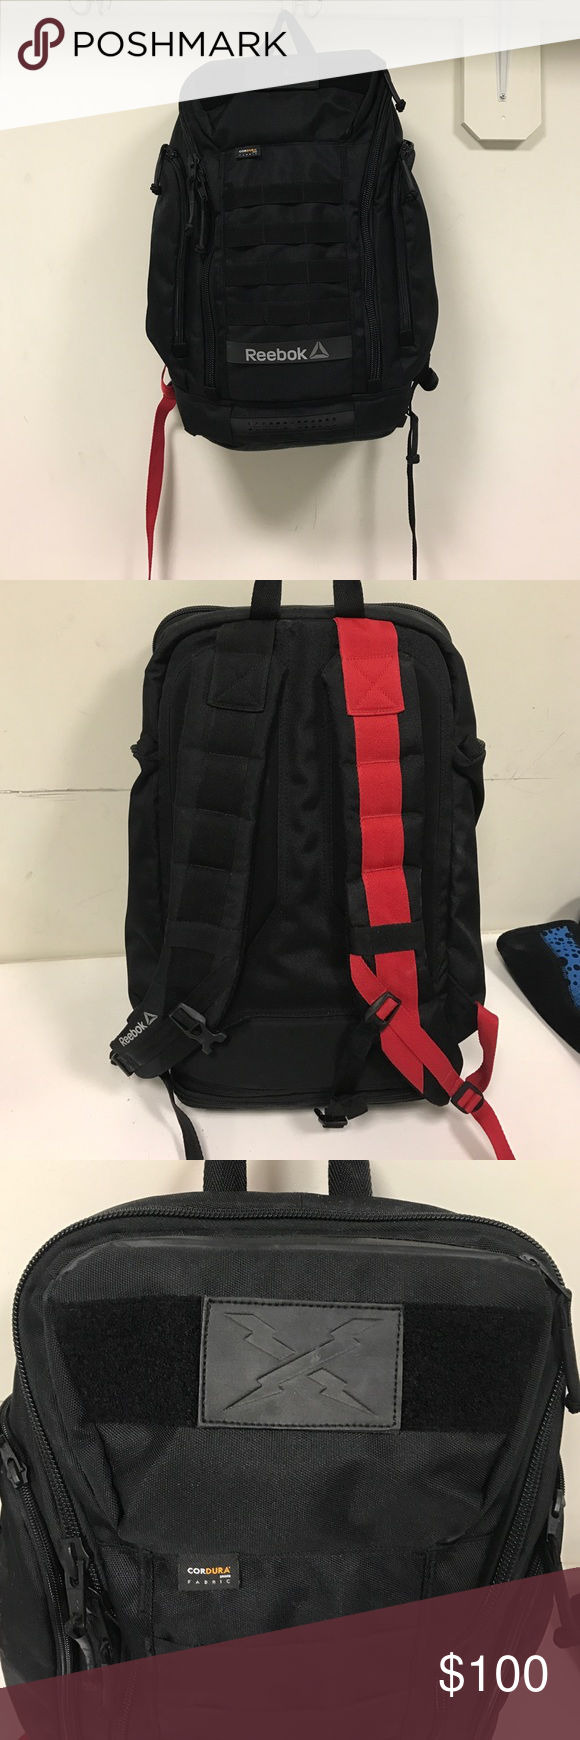 8c02cdc2555f Reebok CrossFit Backpack Reebok CrossFit backpack.... lots of pockets  perfect for traveling or the gym Reebok Bags Backpacks